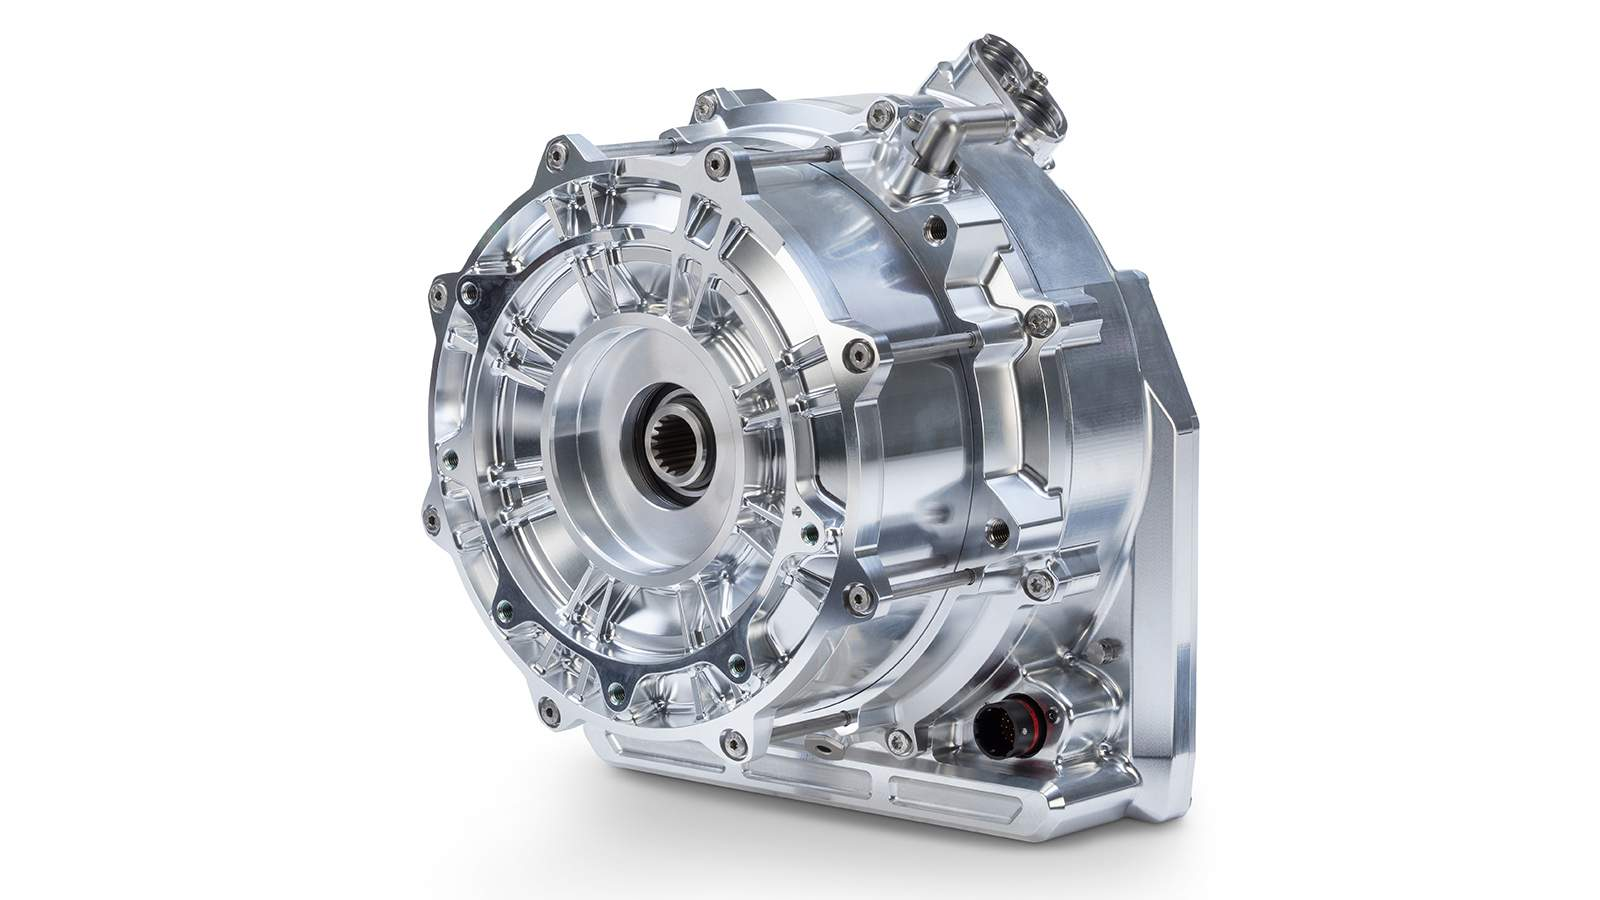 The Triumph Project TE-1's motor is said to make 180 hp and weigh just 10 kg. Image: Triumph Motorcycles